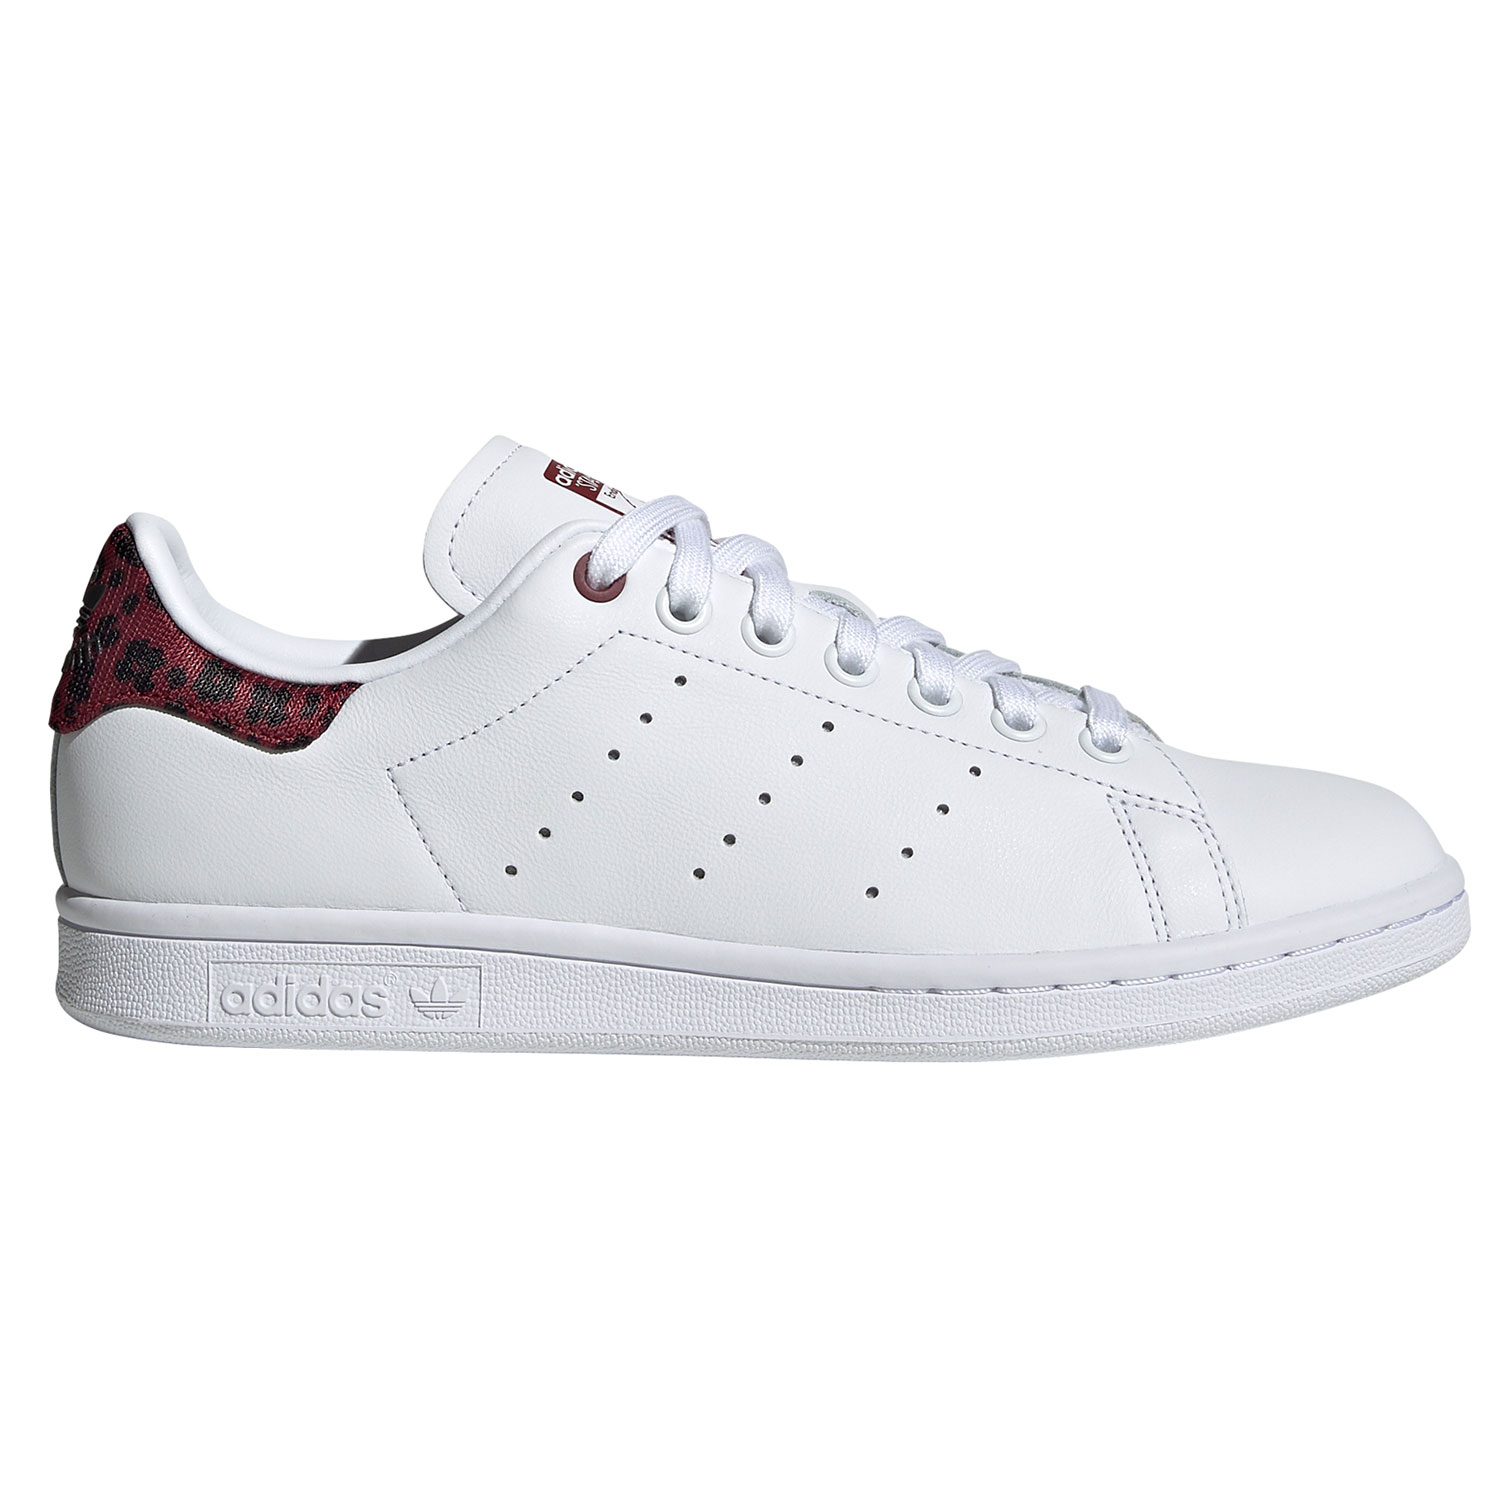 adidas Originals Stan Smith W Damen Sneaker weiß weinrot EE4896